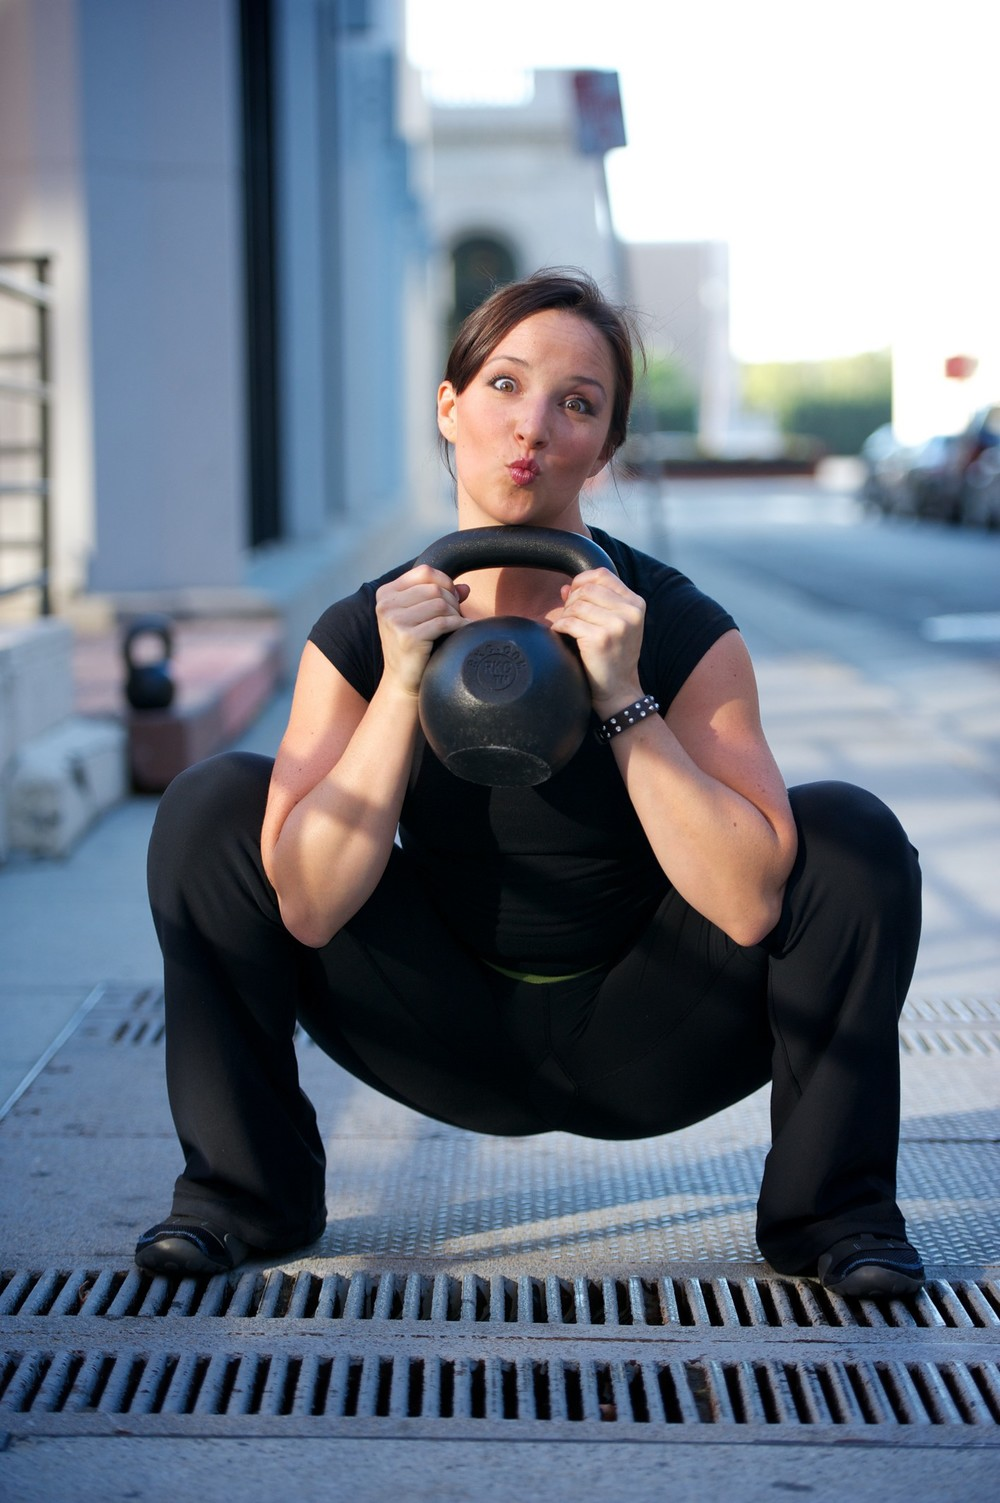 Kettlebell Training and Yoga